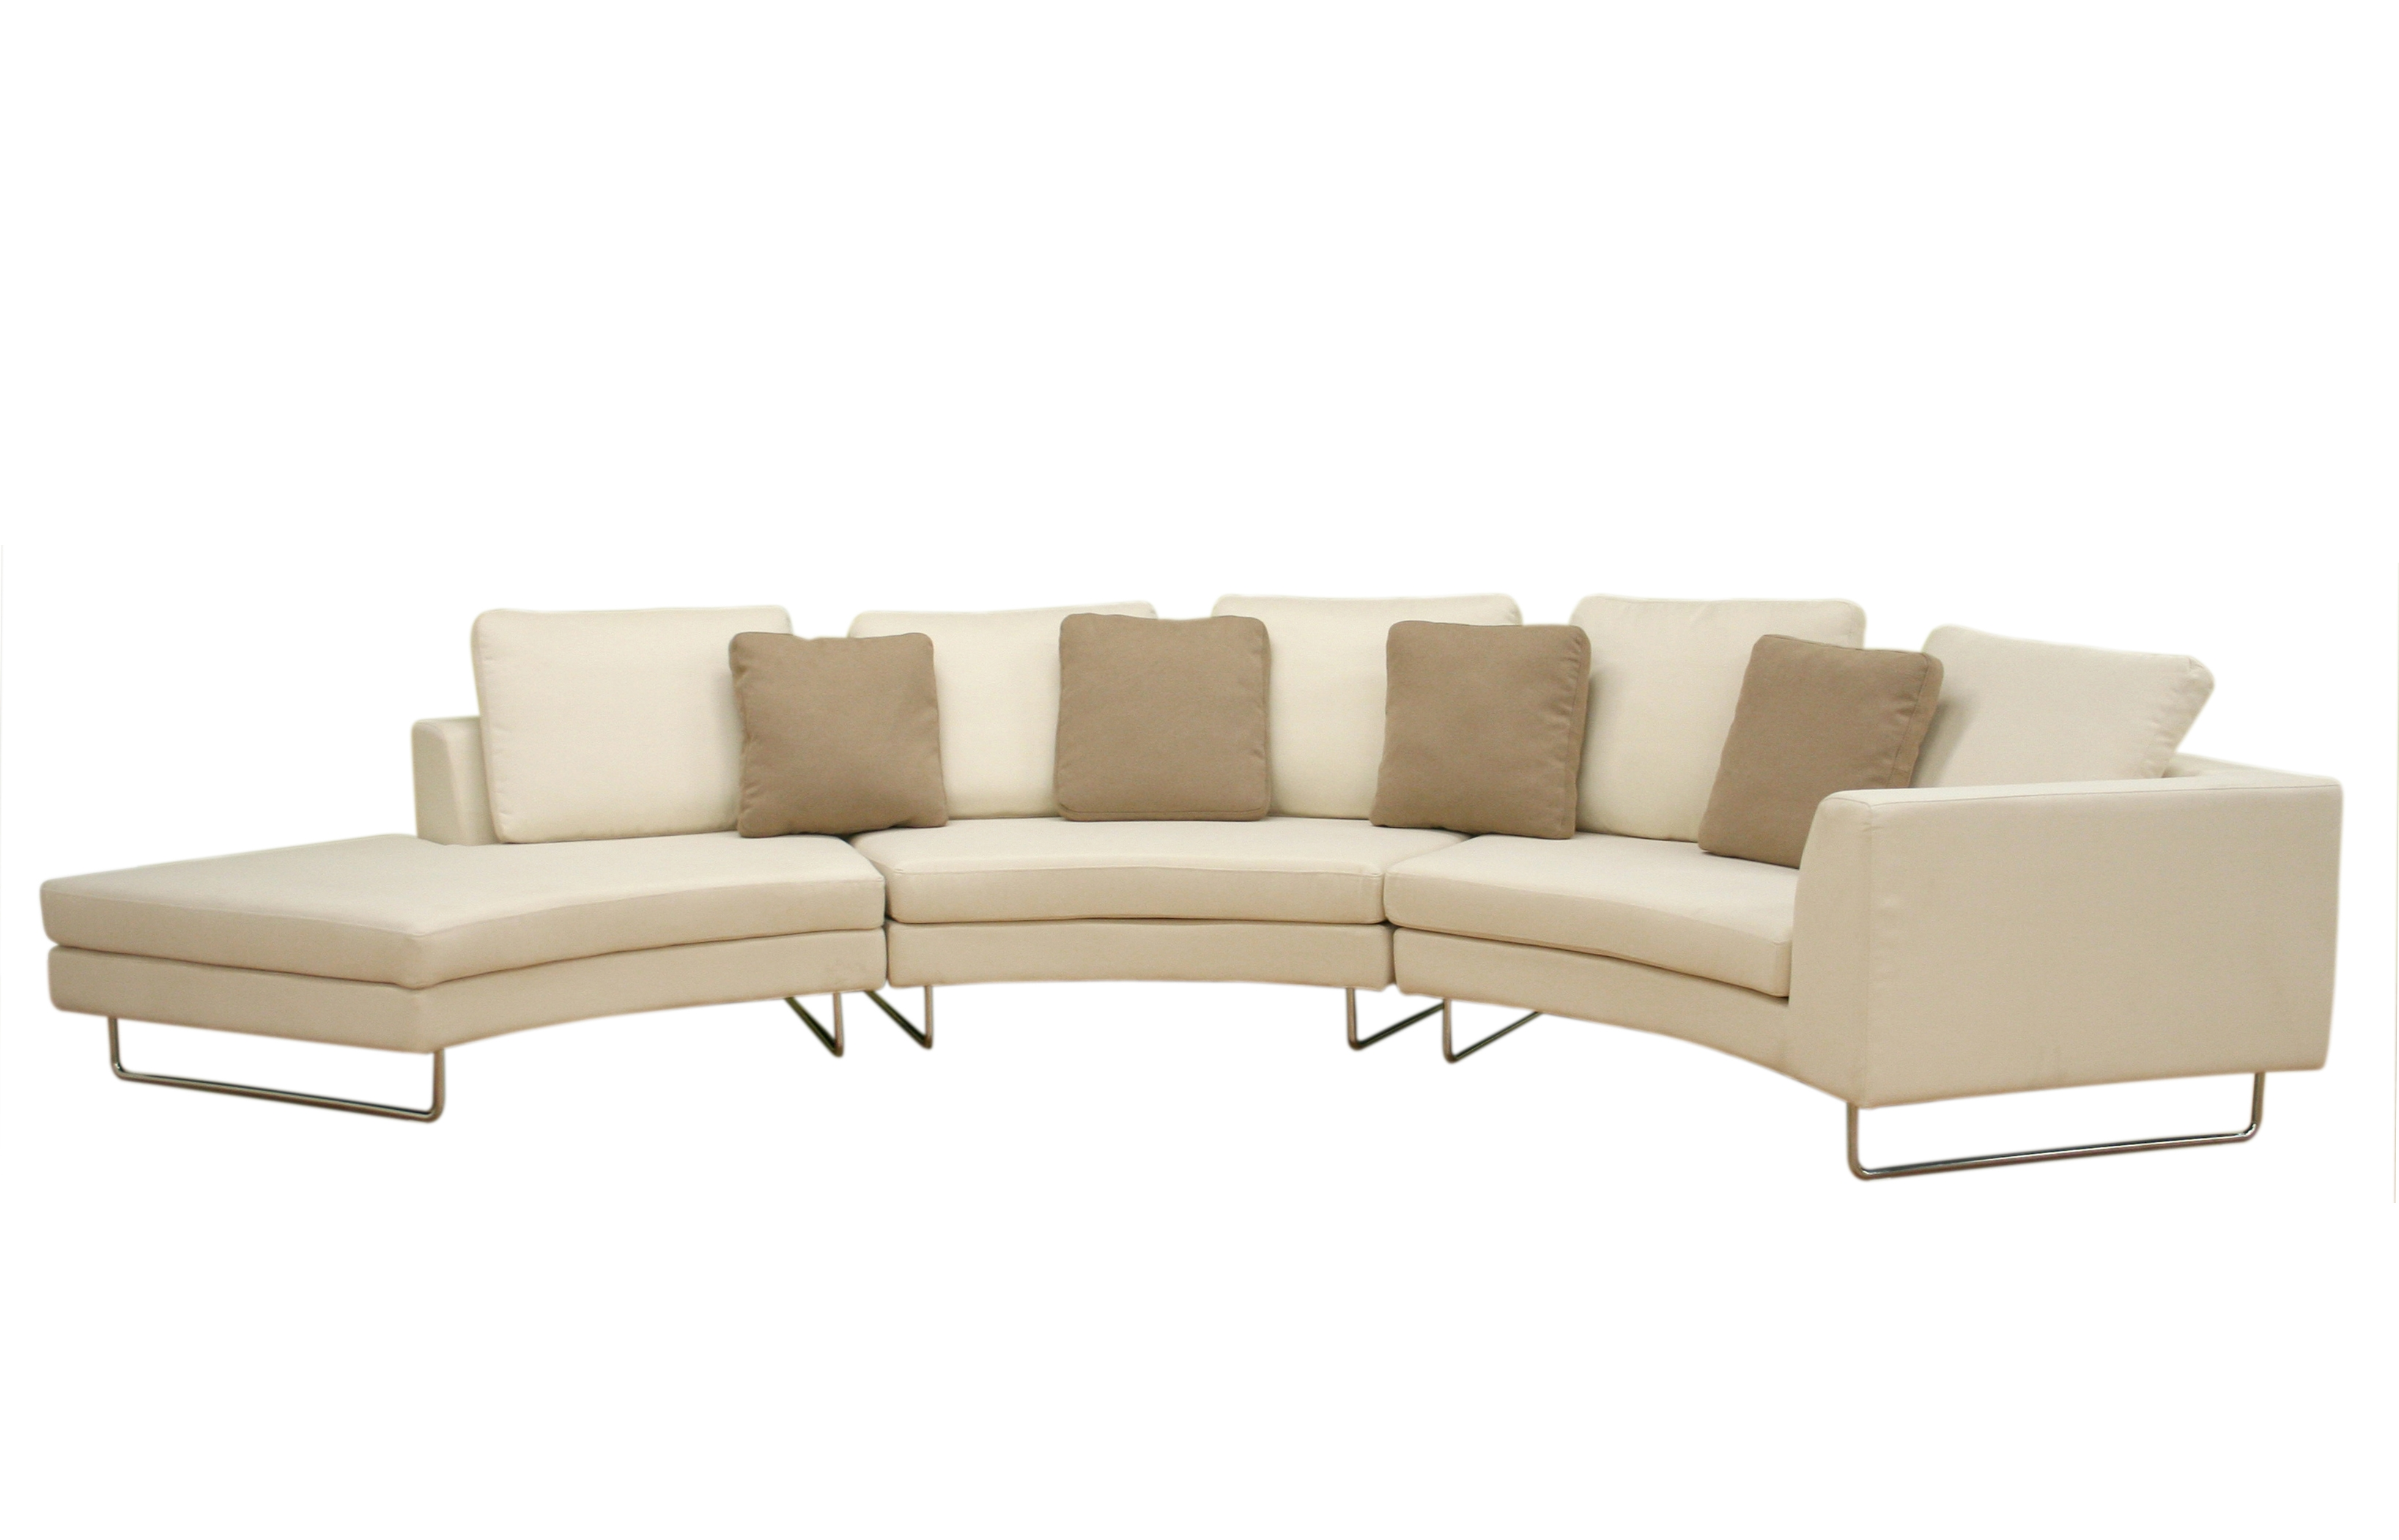 Large Round Curved Sofa Sectional Baxton Studio Lilia Curved 3 Within Contemporary Curved Sofas (Image 10 of 15)